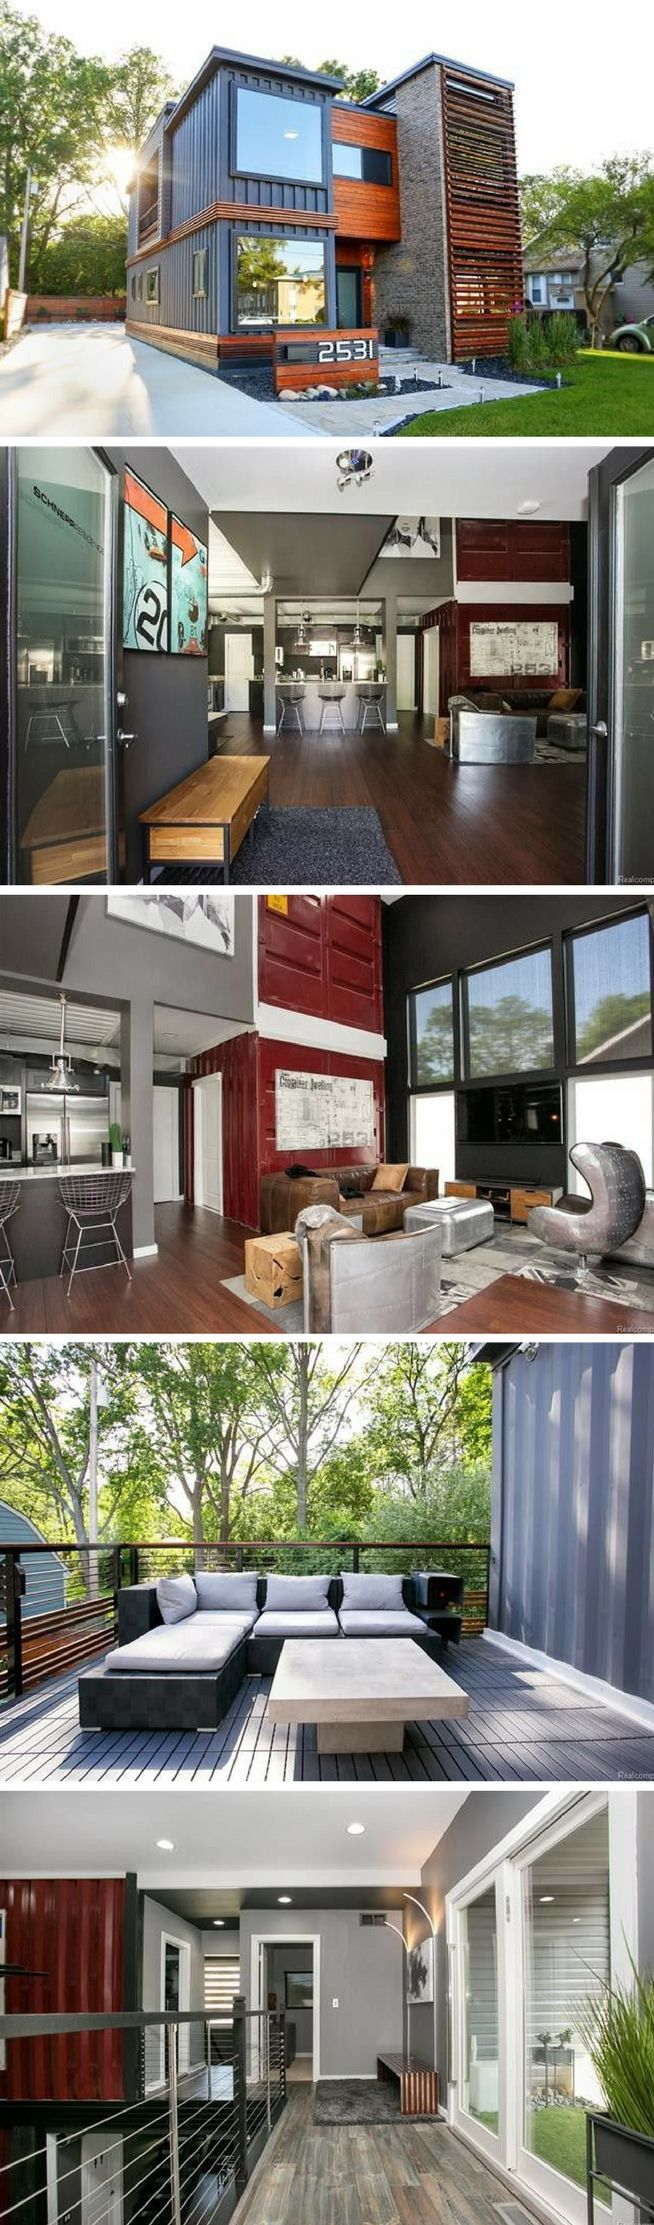 Container House - ROYAL OAK SHIPPING CONTAINER HOUSE - Who Else Wants Simple Step-By-Step Plans To Design And Build A Container Home From Scratch?